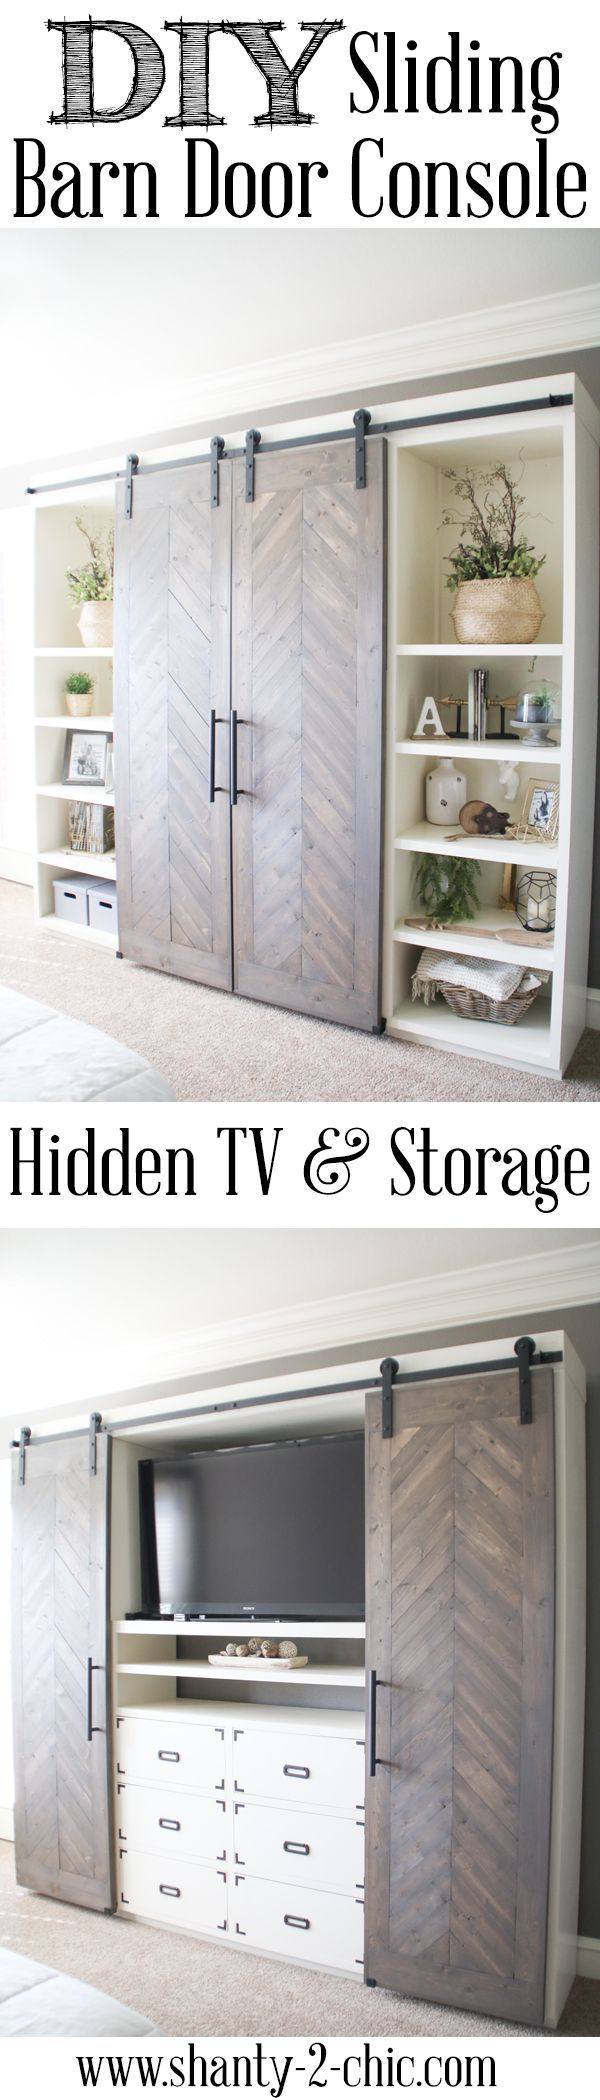 Build this Sliding Barn Door Console! It's perfect for any room! Hide your TV and add tons of storage! Free plans and tutorial at www.shanty-2-chic.com